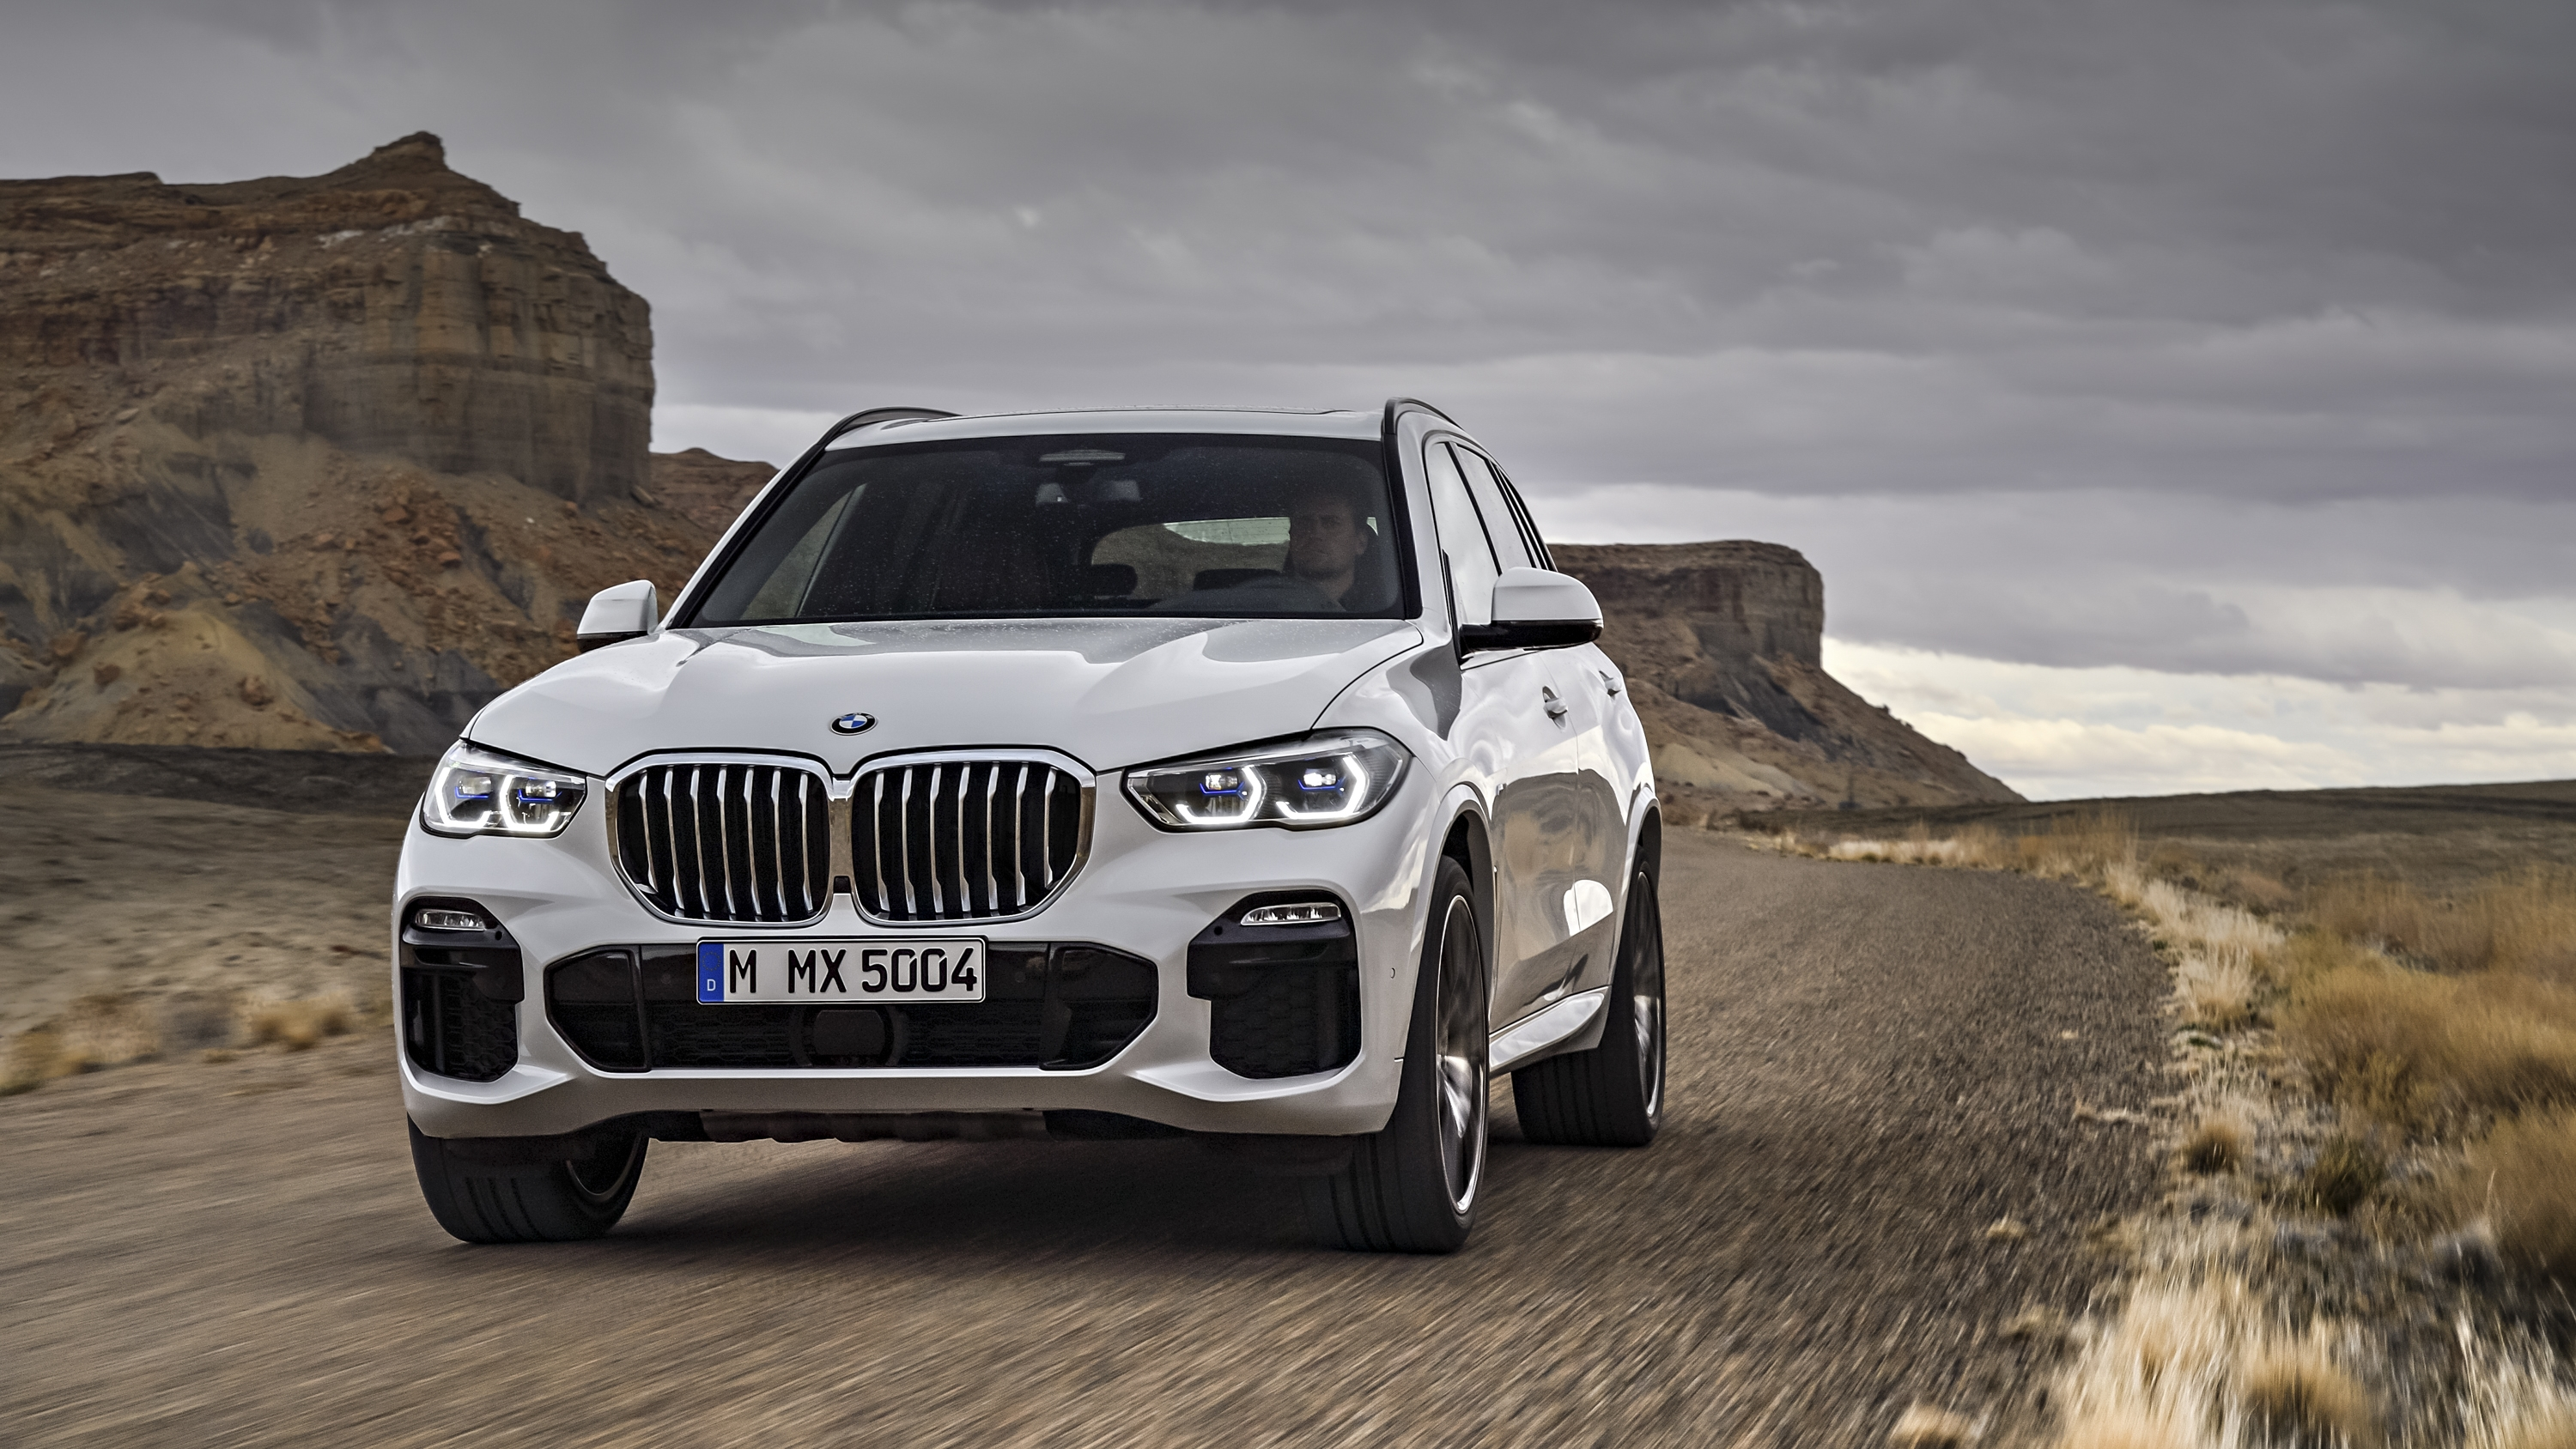 The 2019 Bmw X5 Grew In Almost Every Way But Doesn T